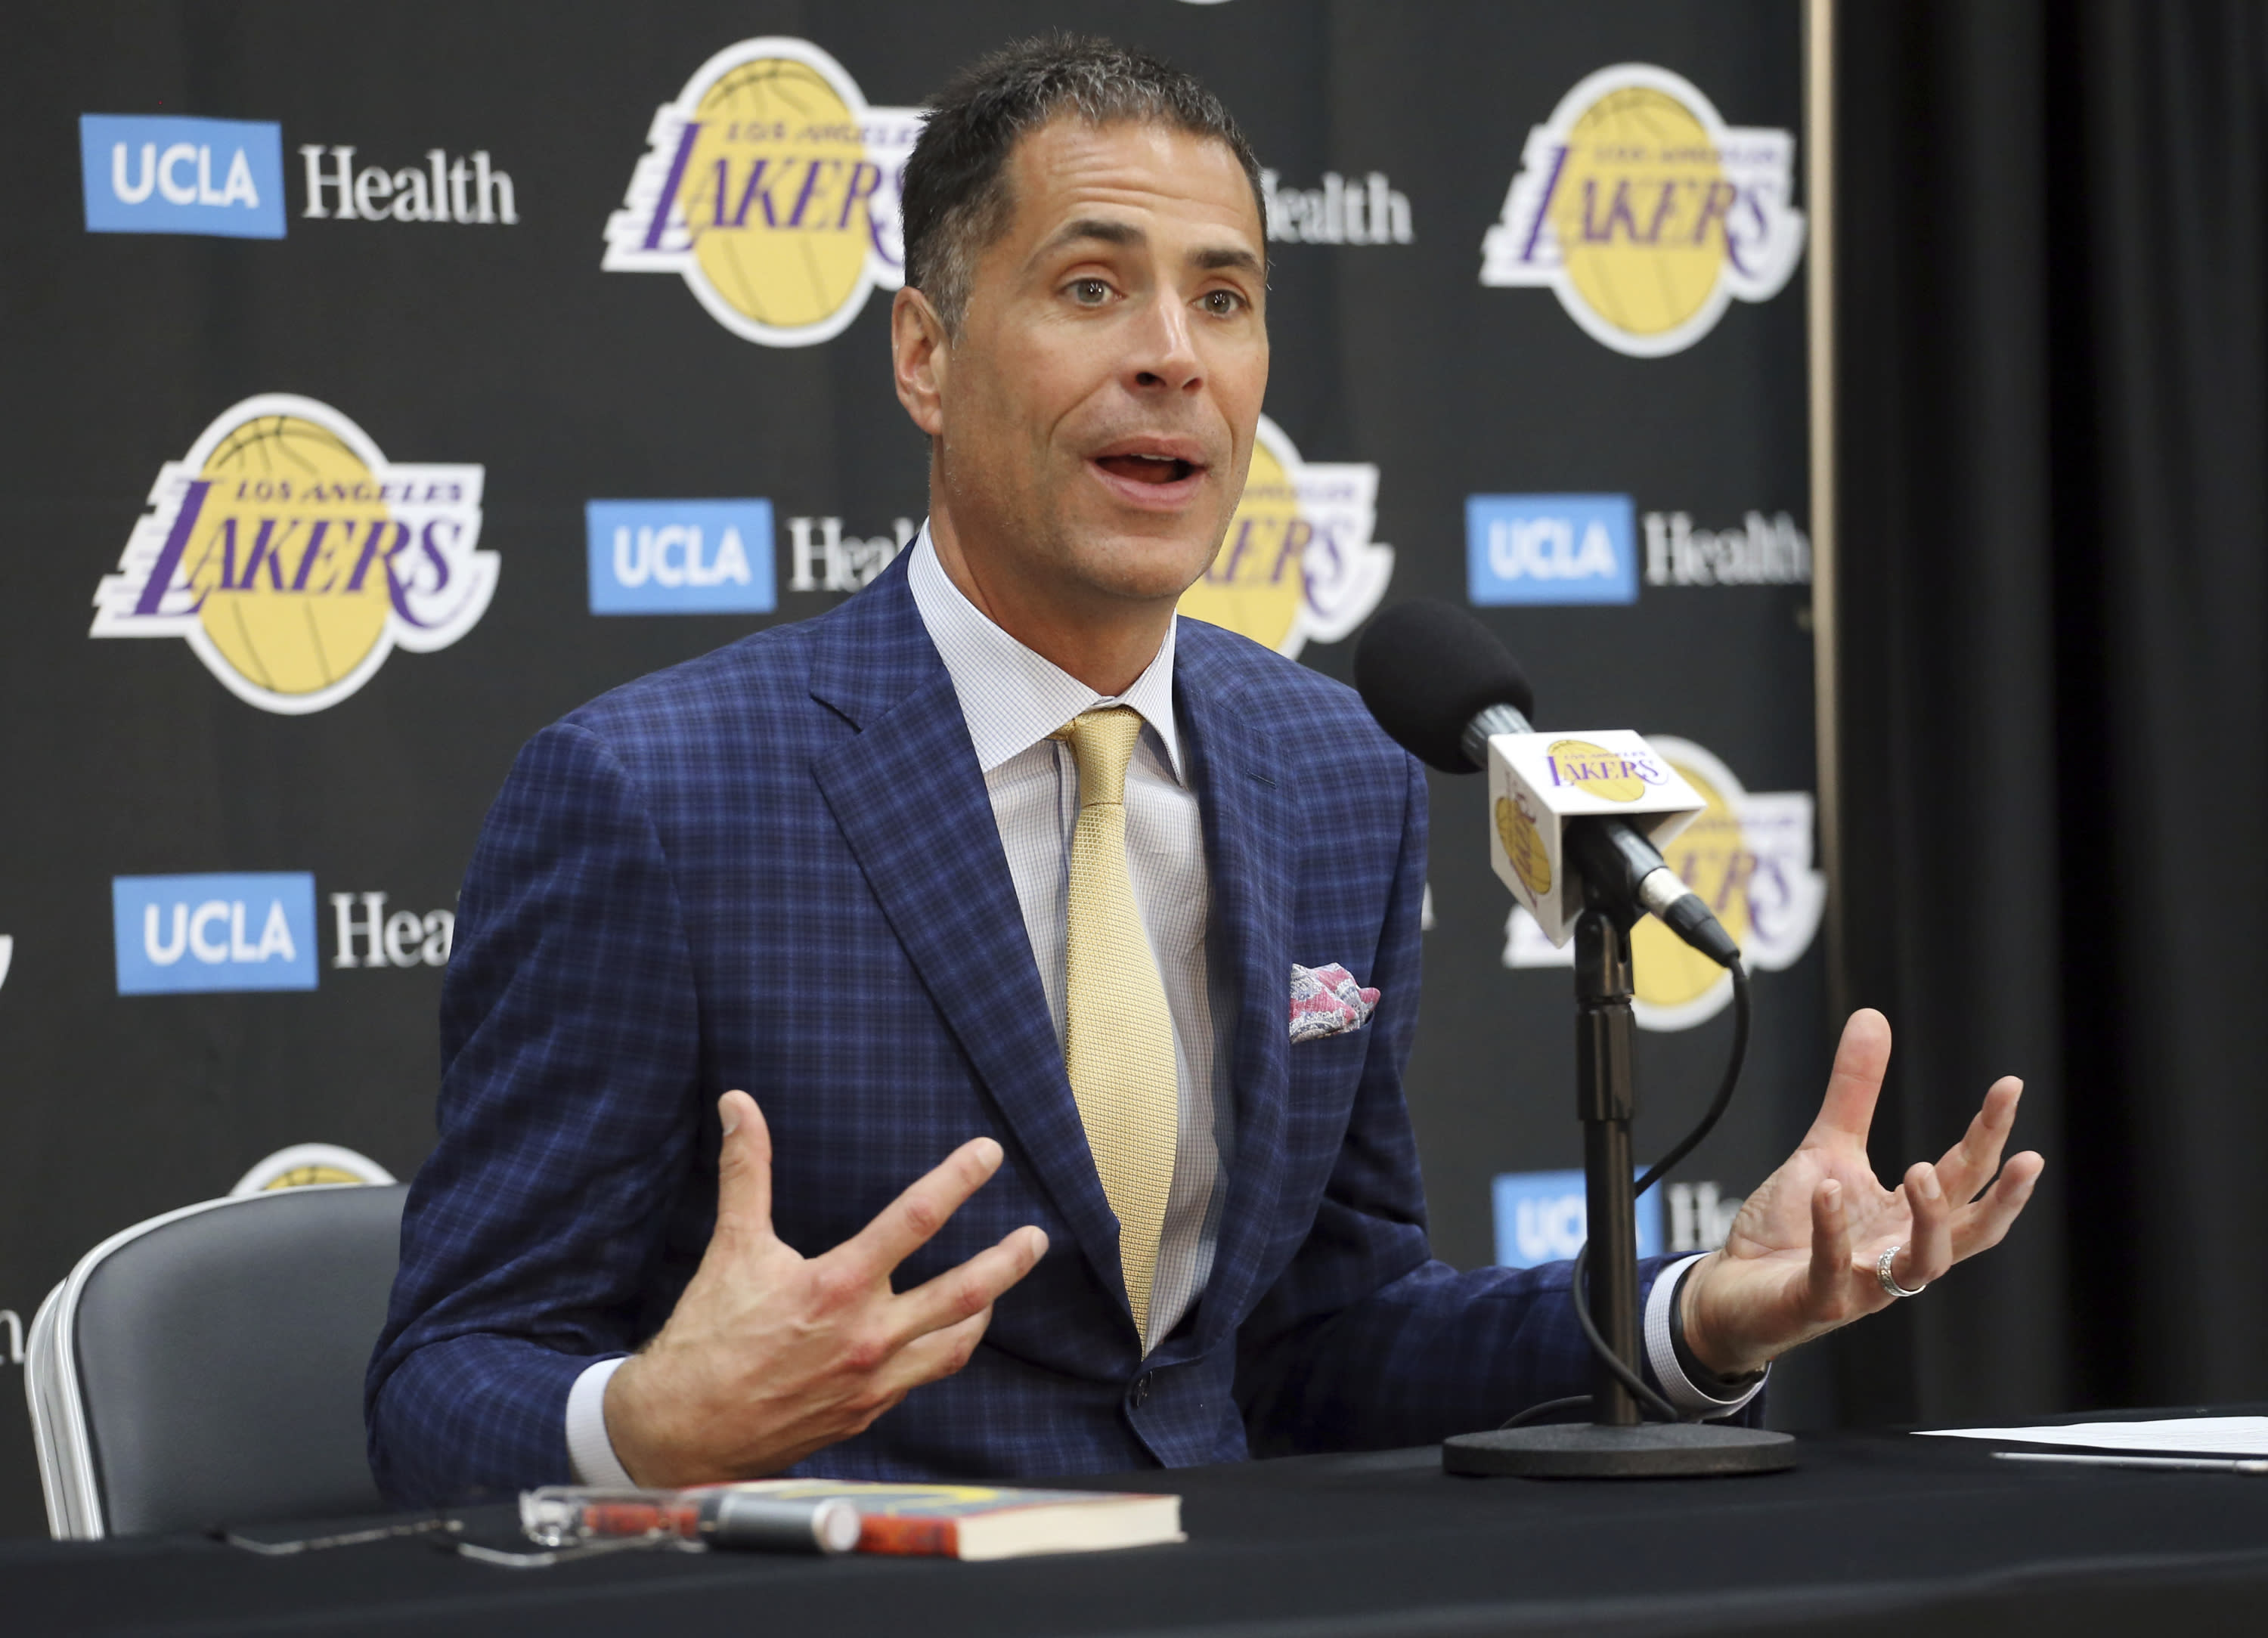 Los Angeles Lakers GM Rob Pelinka: With LeBron James' signing and 'tough' roster, sights are set on NBA ...